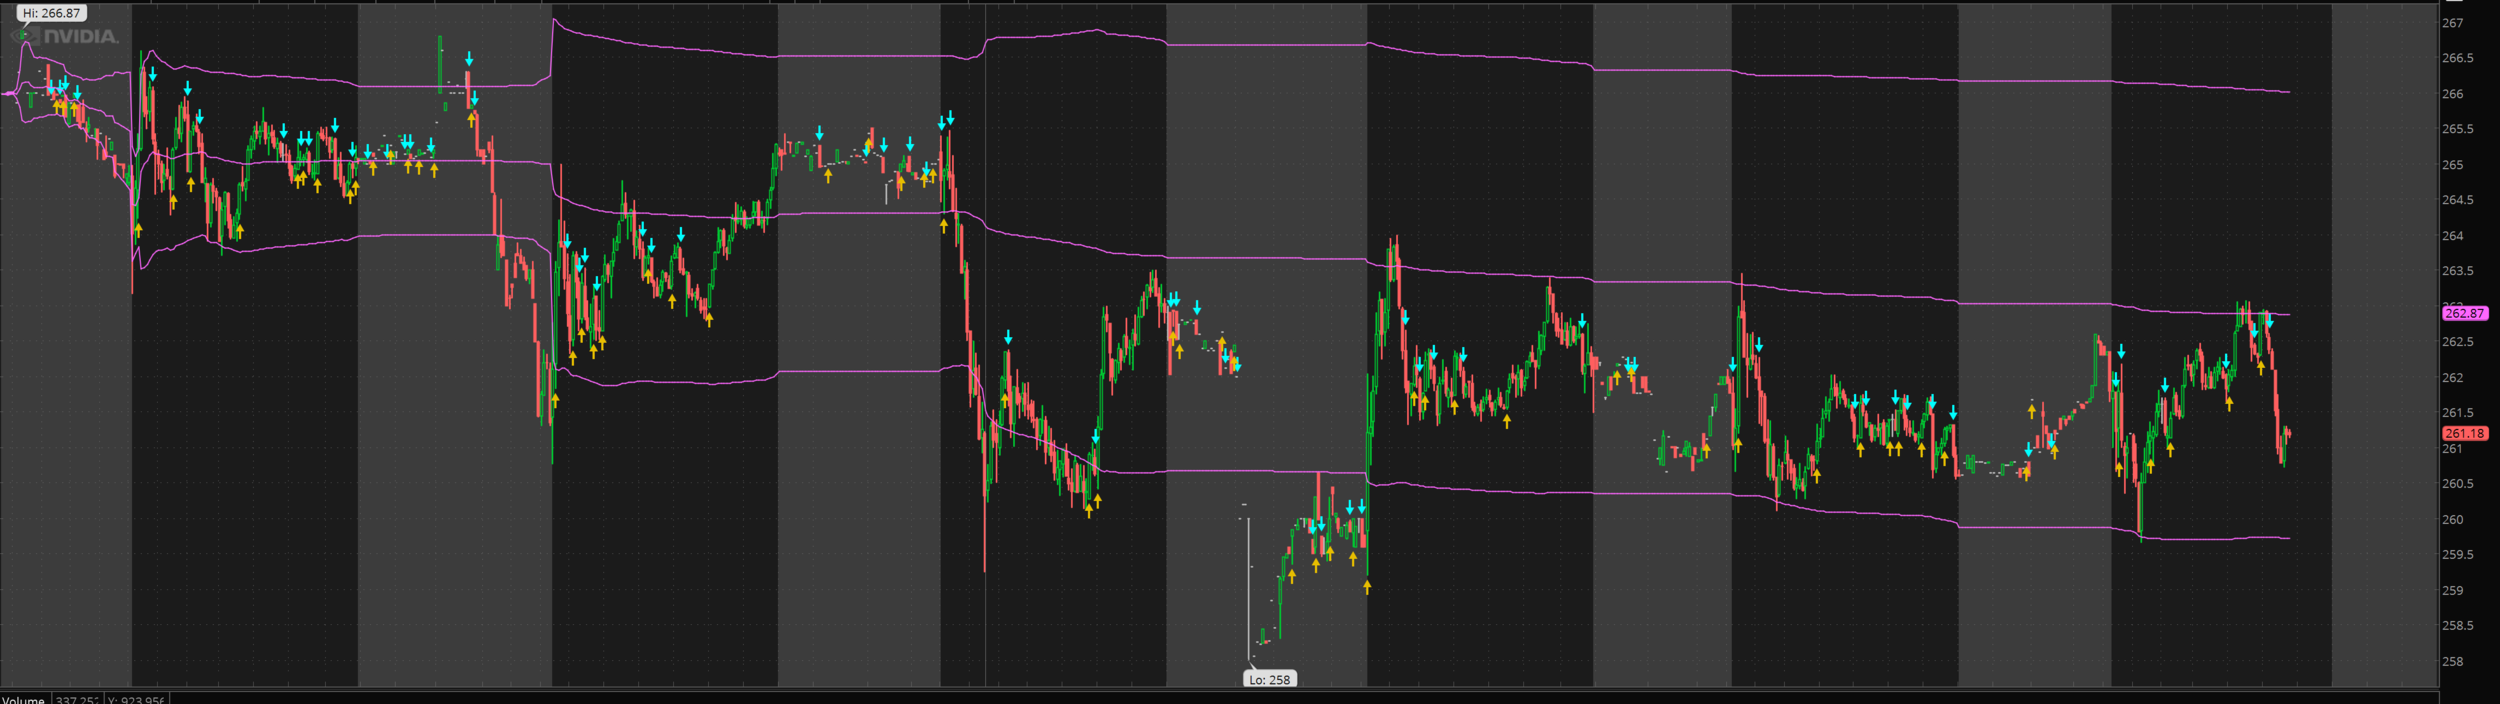 VWAP shown on the $NVDA 5m chart. You can clearly see how price action moves between the purple lines.